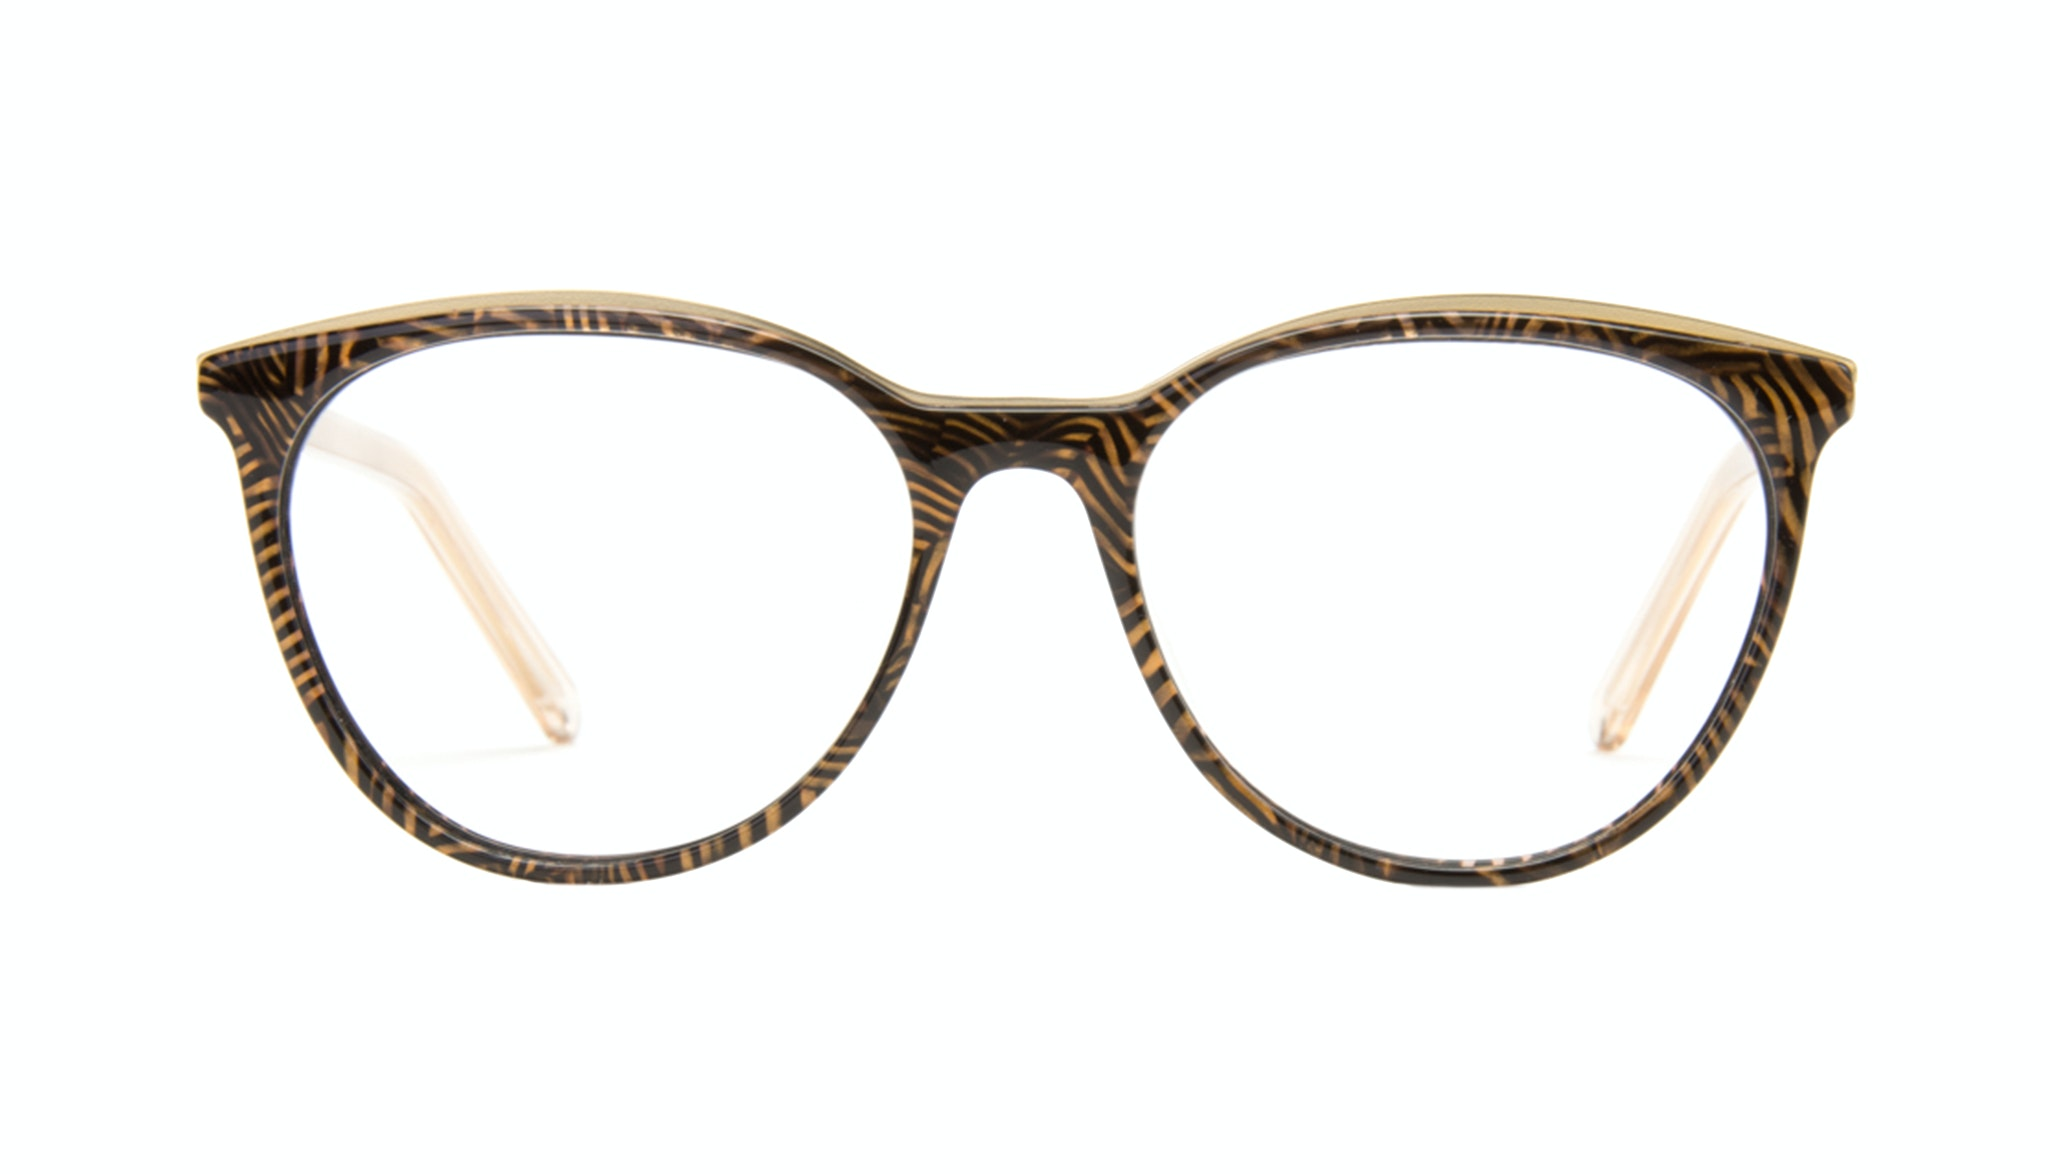 Affordable Fashion Glasses Round Eyeglasses Women Gypsy Copper Tort Front